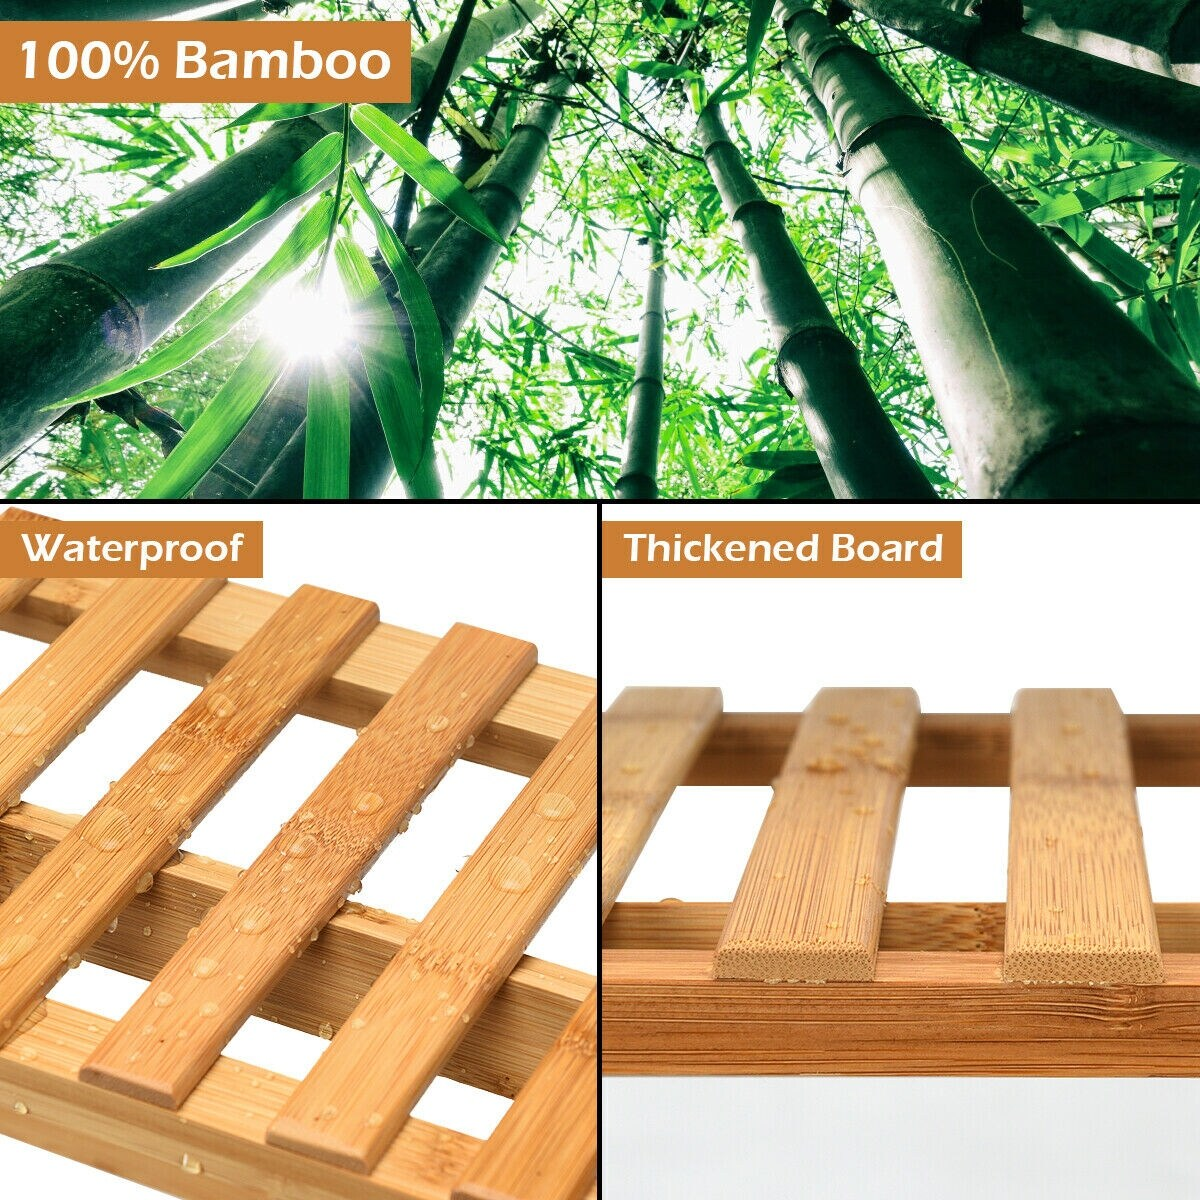 Costway 3 Tier Bamboo Hanging Folding Plant Shelf Stand Flower Pot Display  Rack Bookcase - Raw Bamboo Color